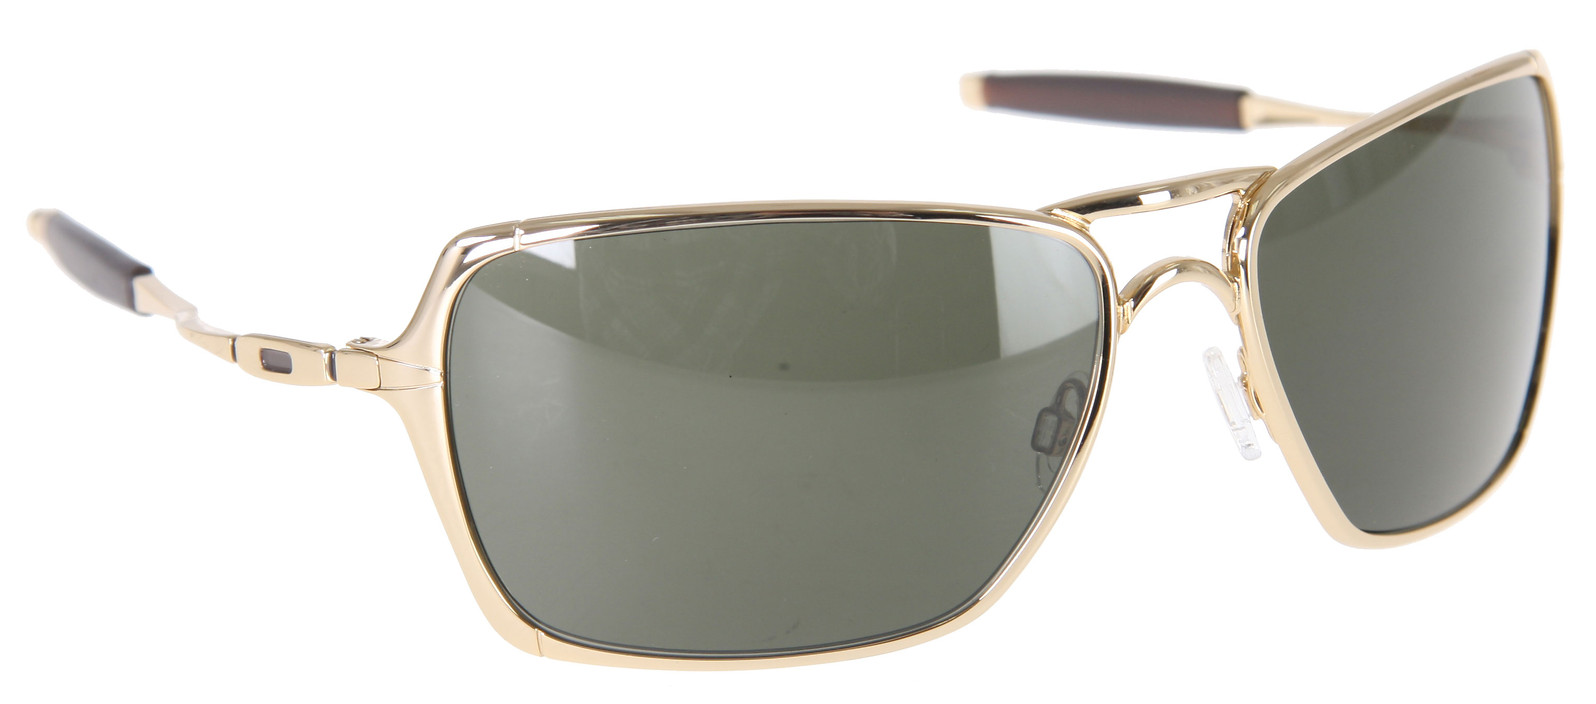 oakley-inmate-sngls-polished-gldgry-10